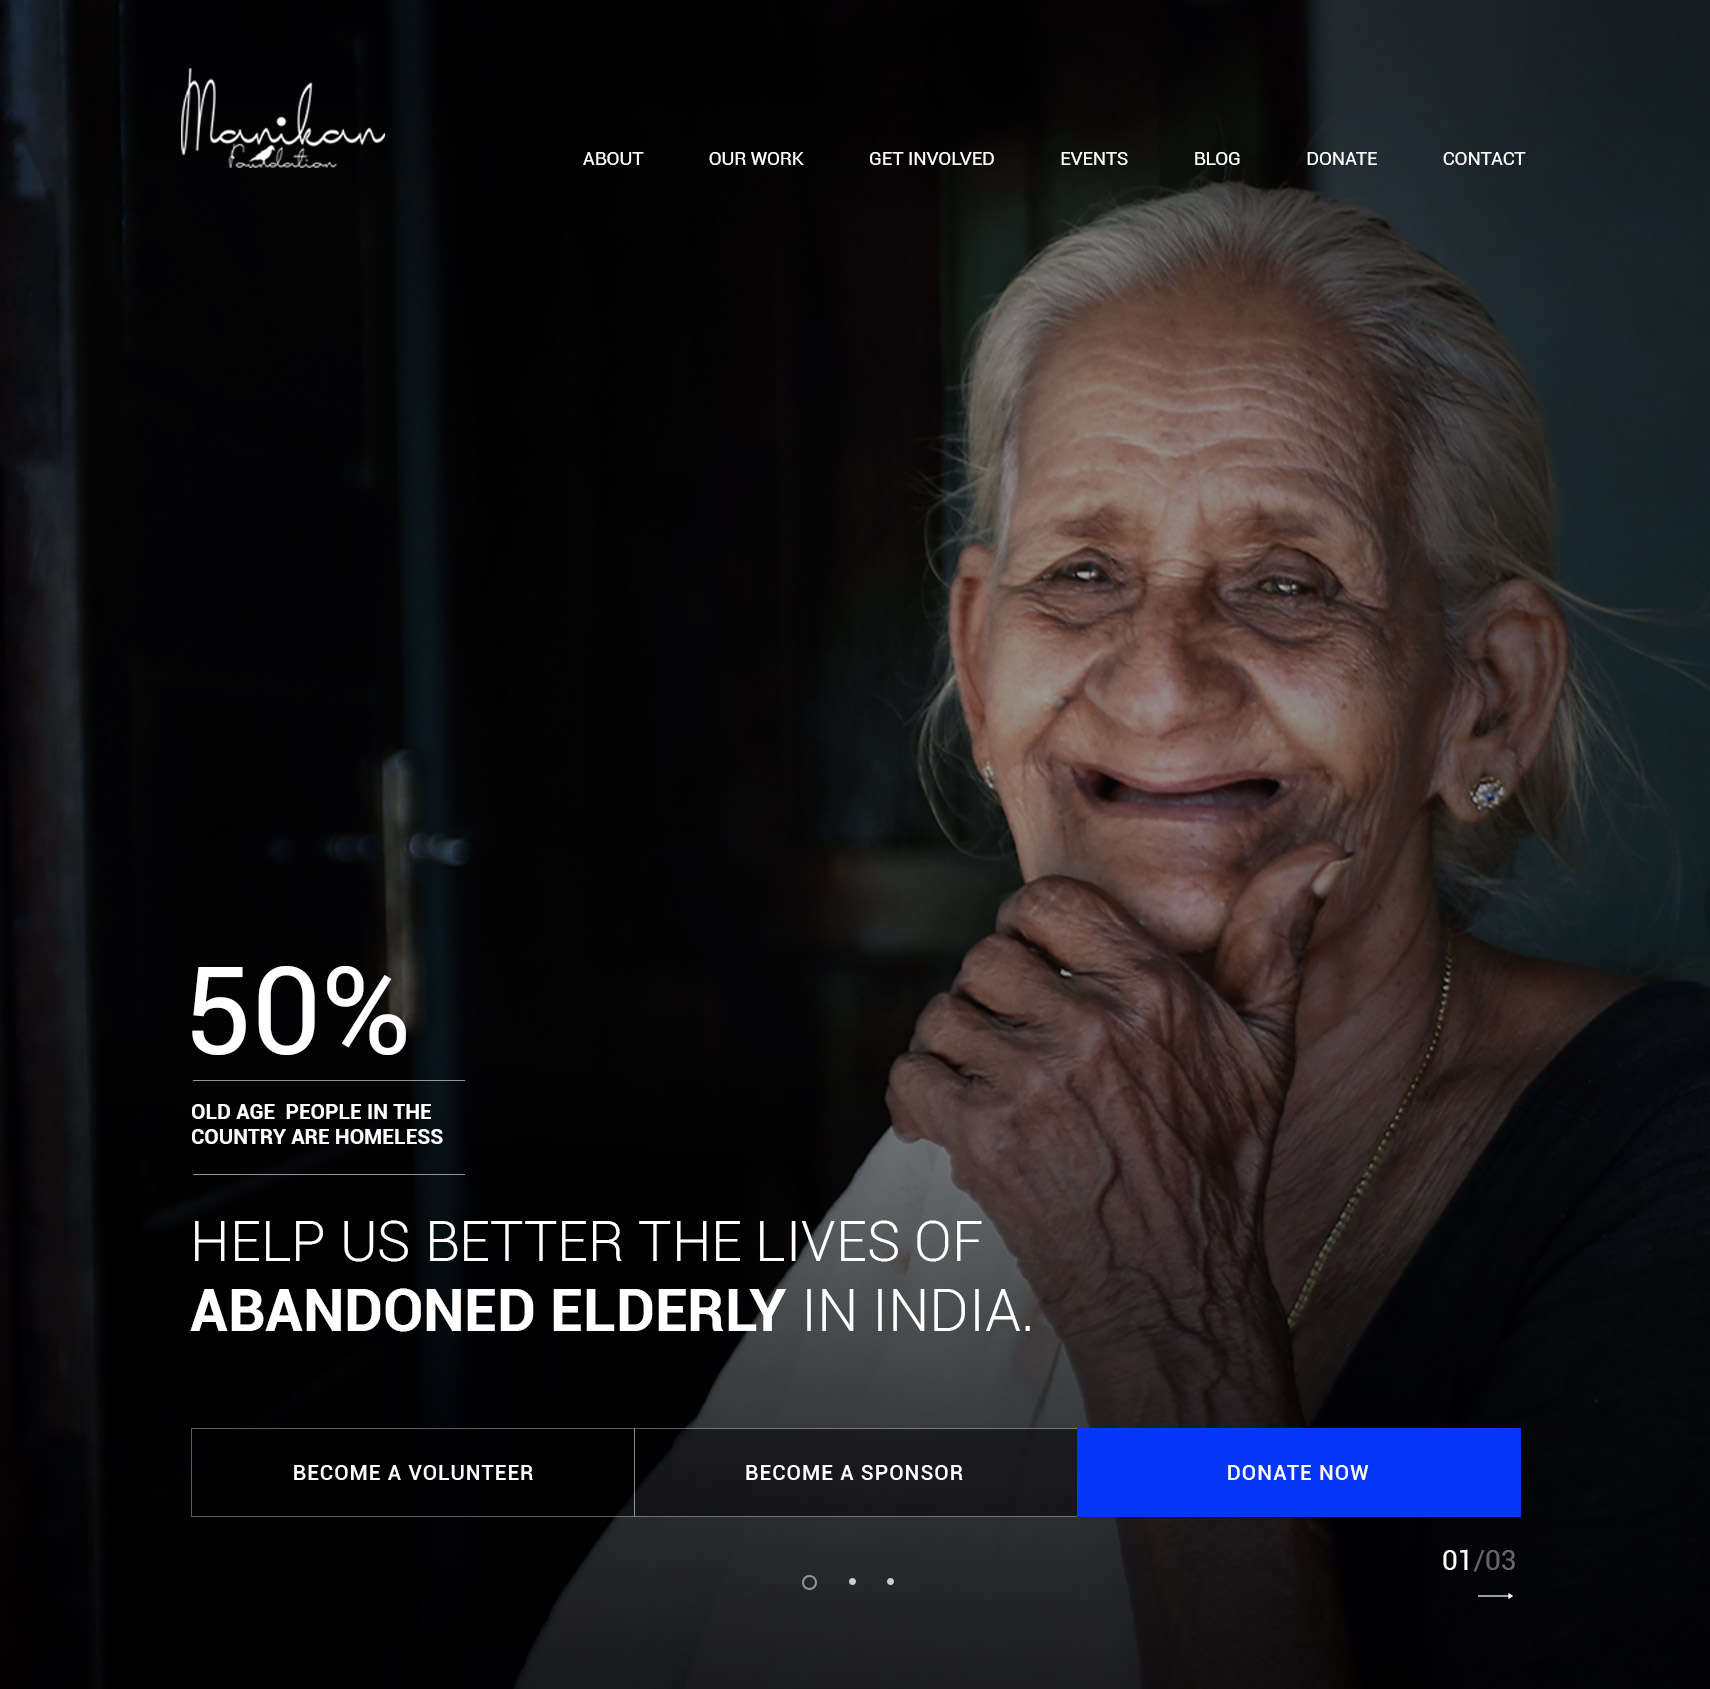 WebSite for Manikan Foundation